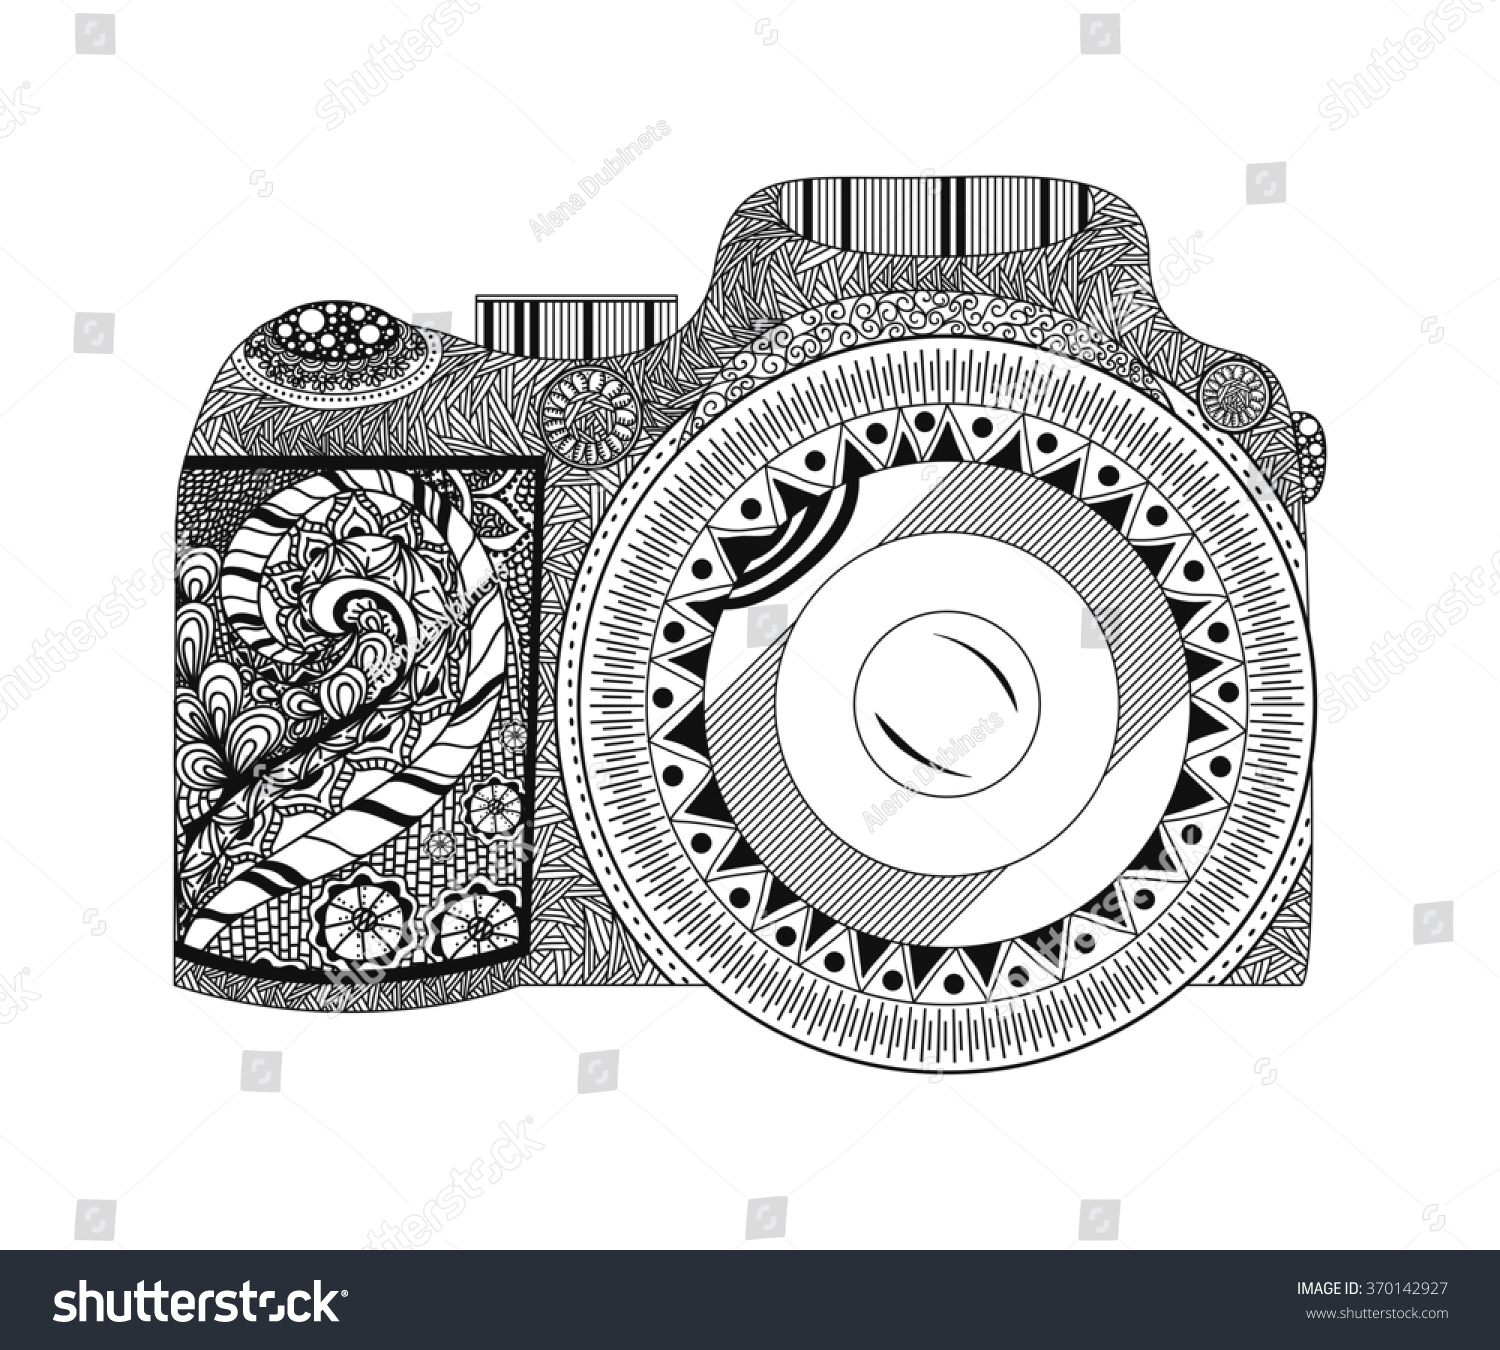 camera coloring pages Monochrome Coloring Page Camera Hand Drawn Stock Illustration  camera coloring pages